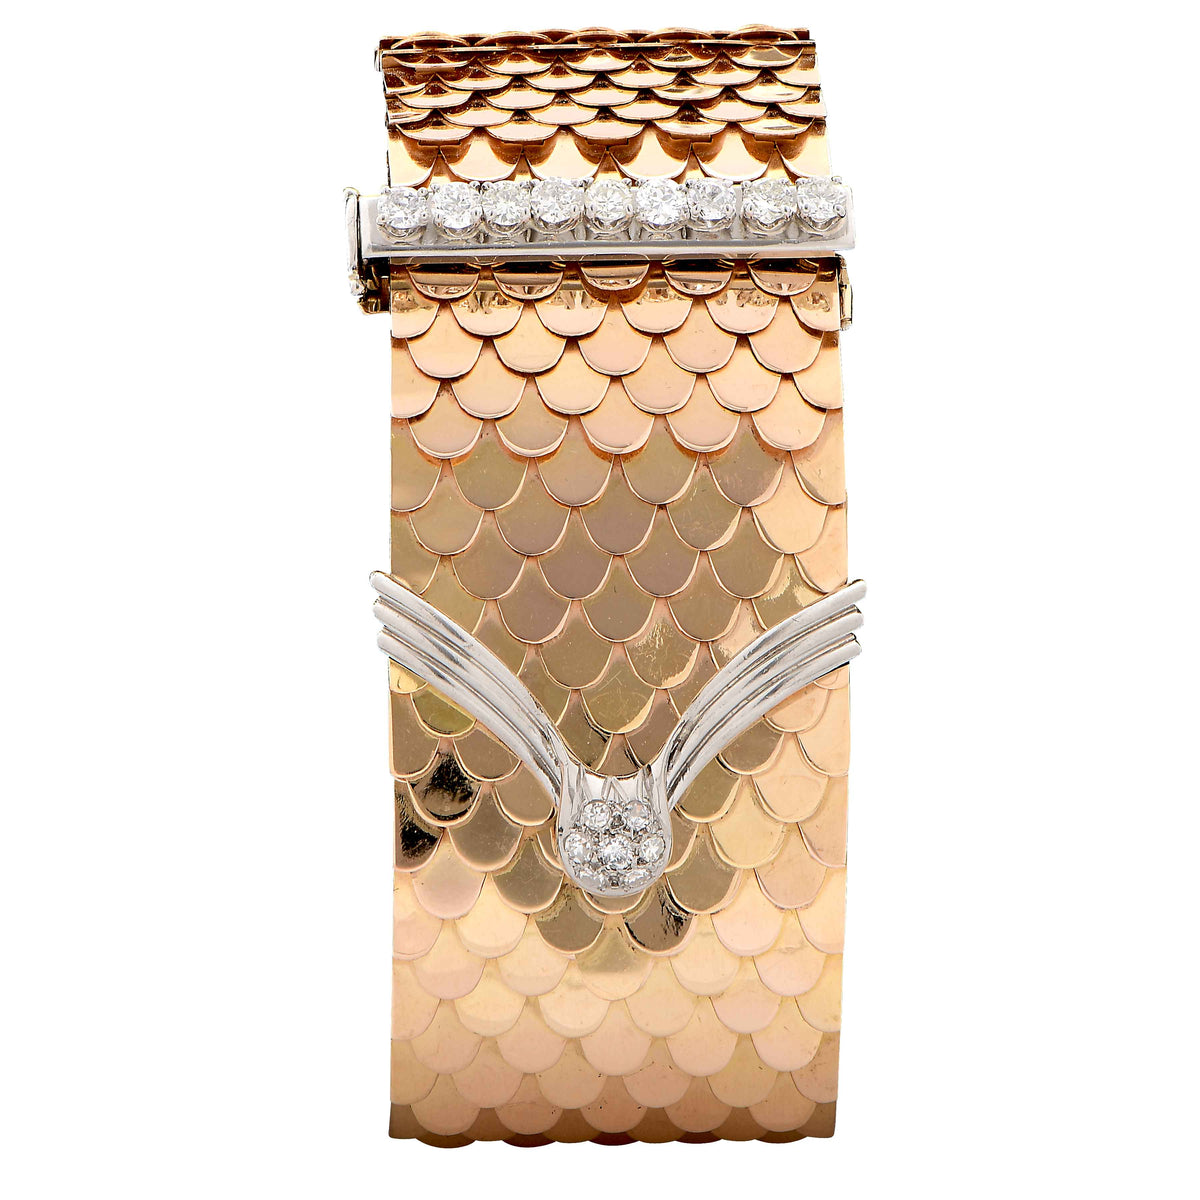 Retro 18 Karat Yellow Gold Scale Diamond Buckle Bracelet